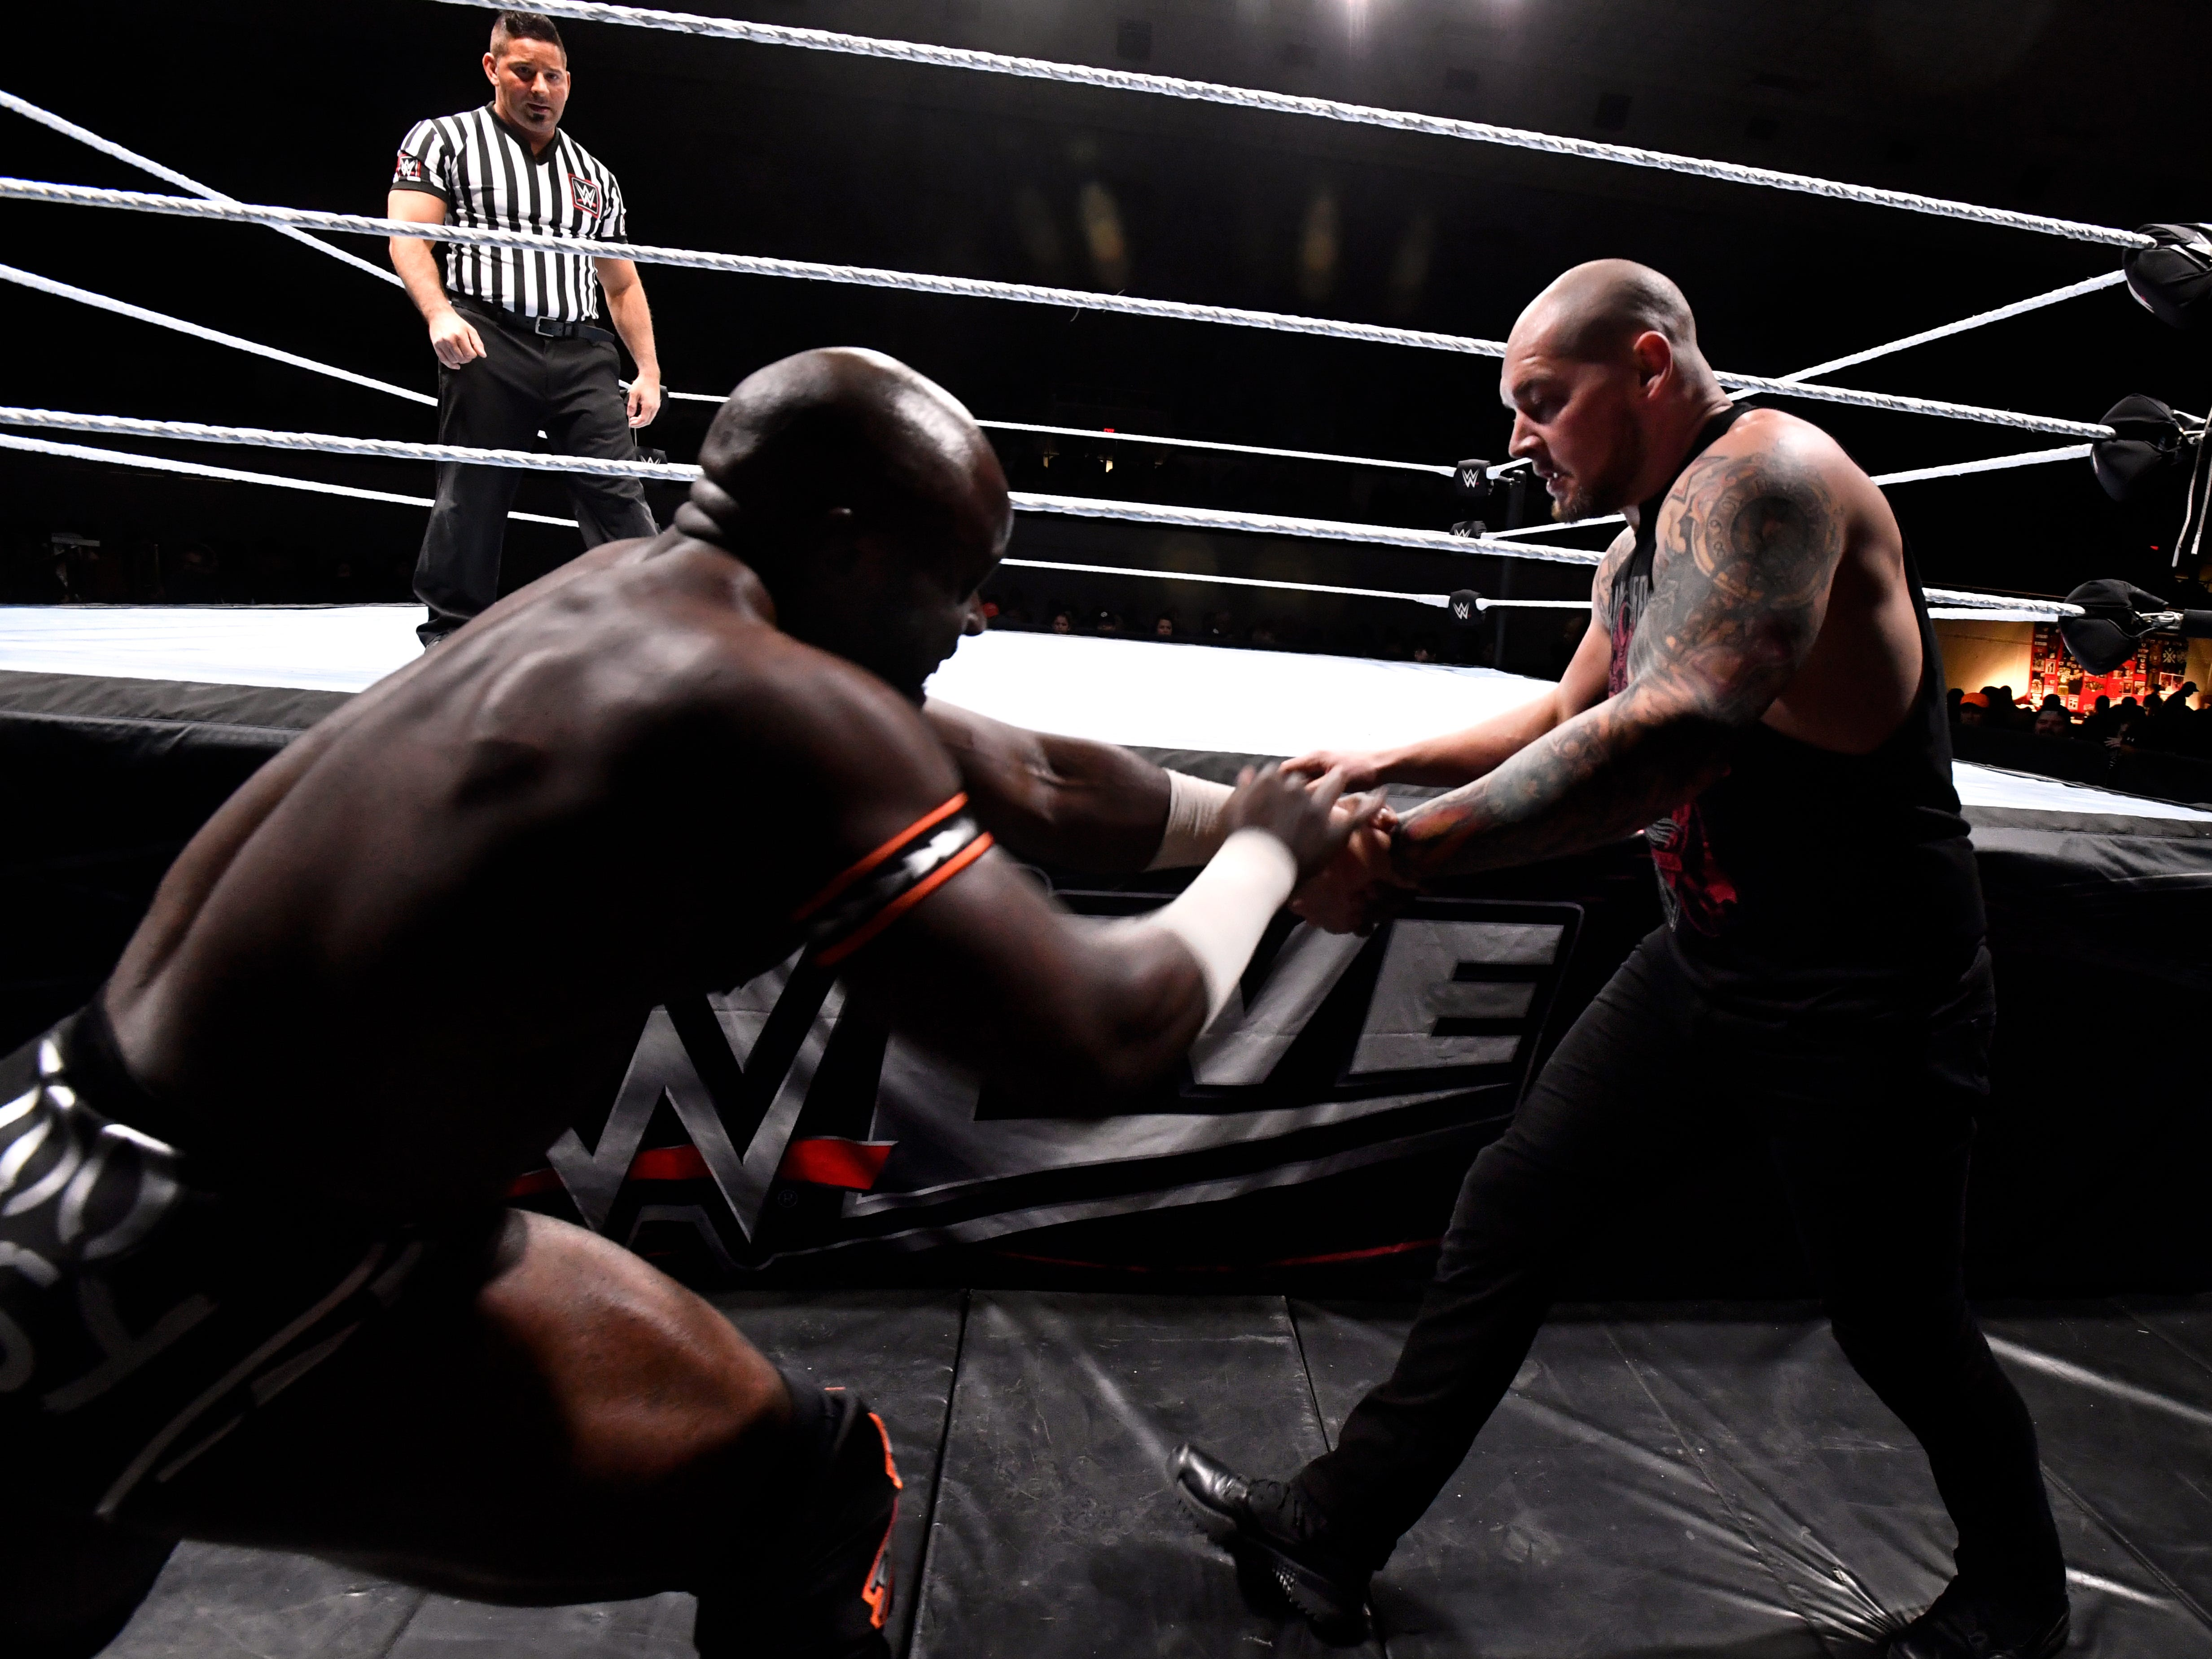 Apollo Crews (left) squares-off with Baron Corbin outside of the ring during Saturday's WWE Live wrestling event Jan. 19, 2019. Held at the Taylor County Coliseum, the evening featured a colorful array of World Wrestling Entertainment stars.